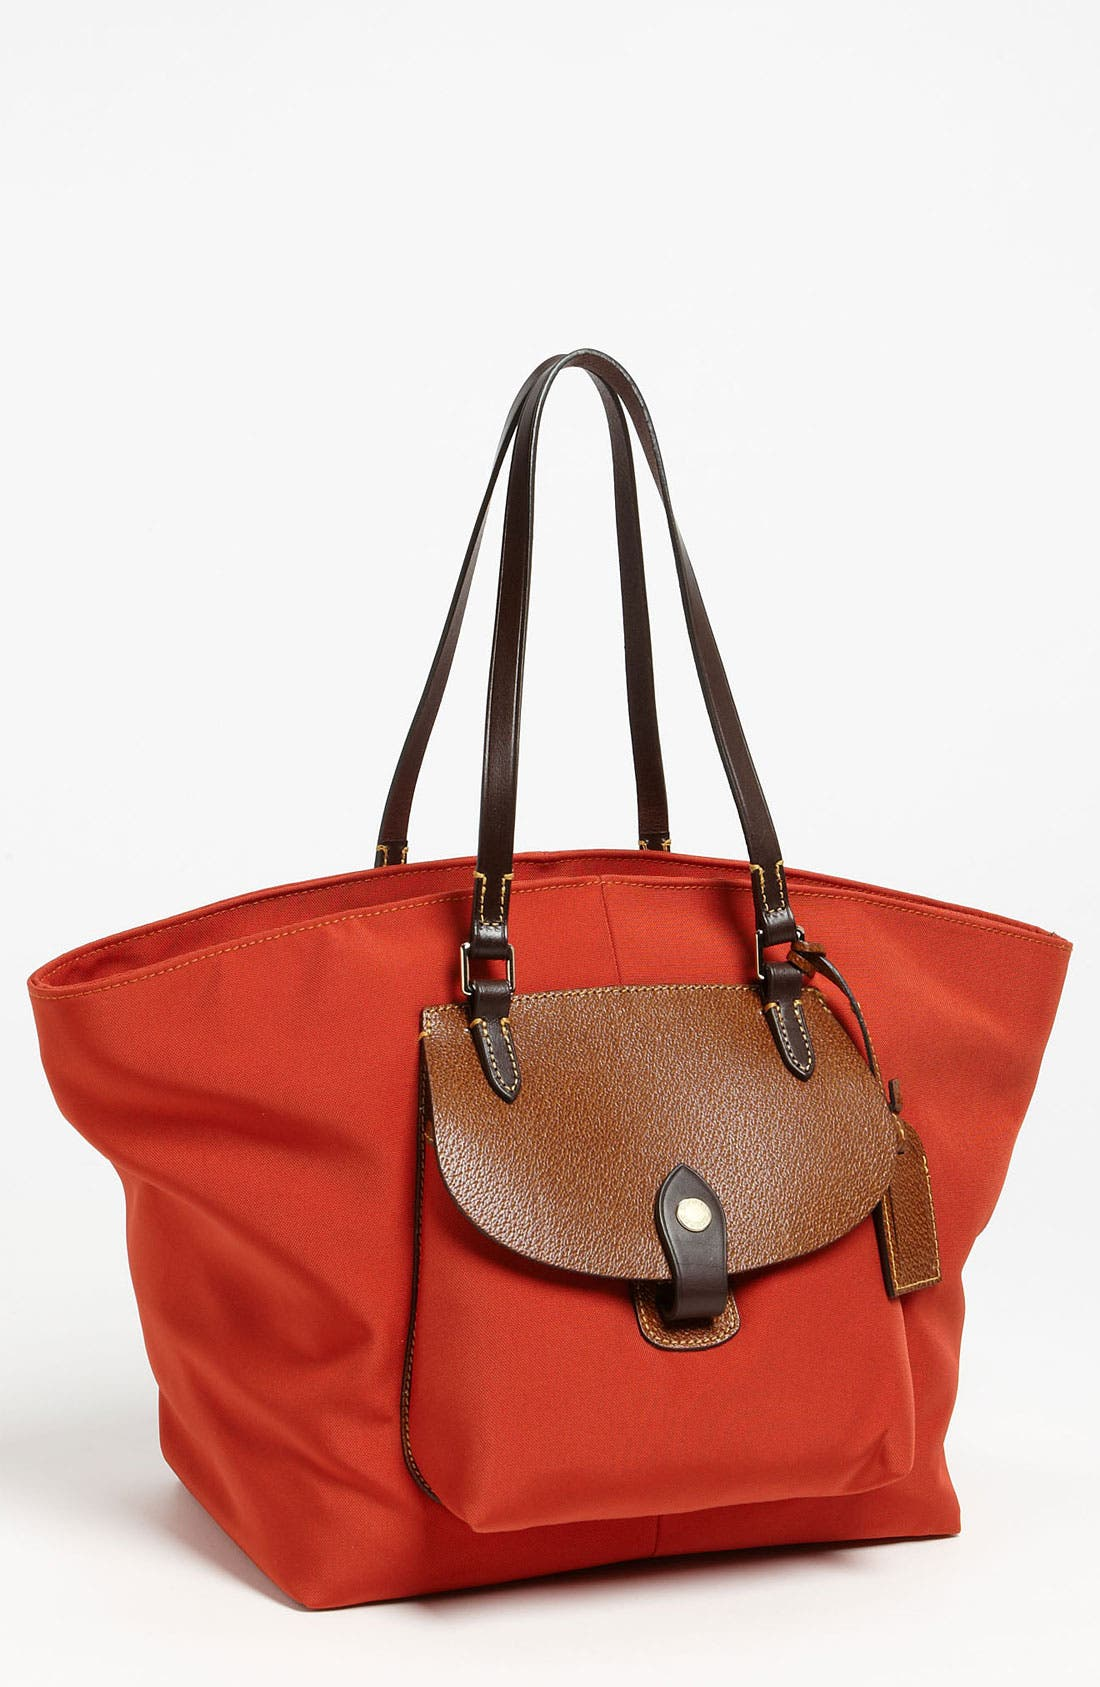 Alternate Image 1 Selected - Dooney & Bourke 'Pocket' Shopper